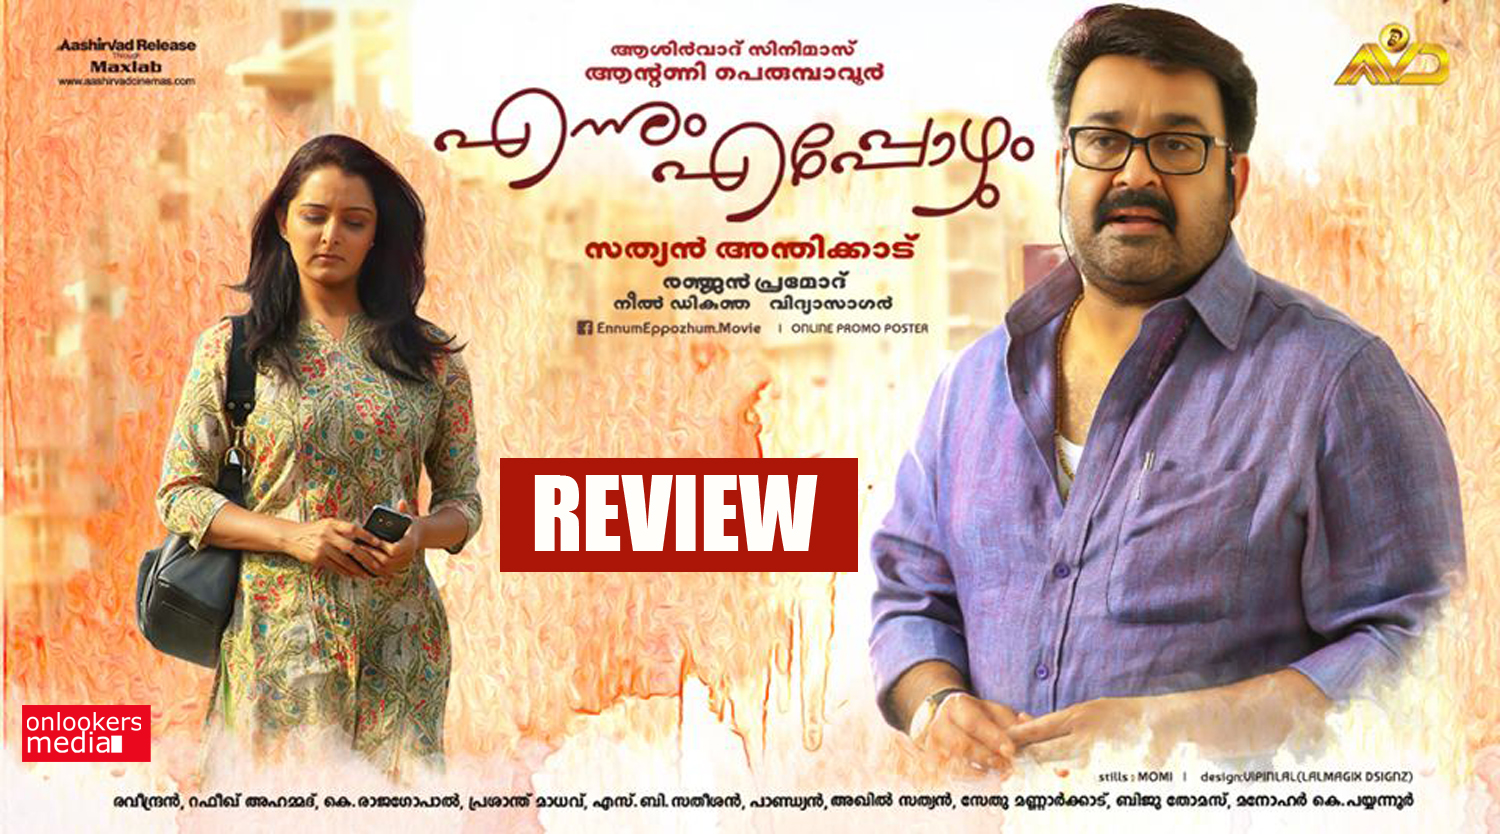 Ennum Eppozhum Review-Rating-Collection Report-Malayalam Movie 2015-Mohanlal-Manju Warrier-Onlookers Media